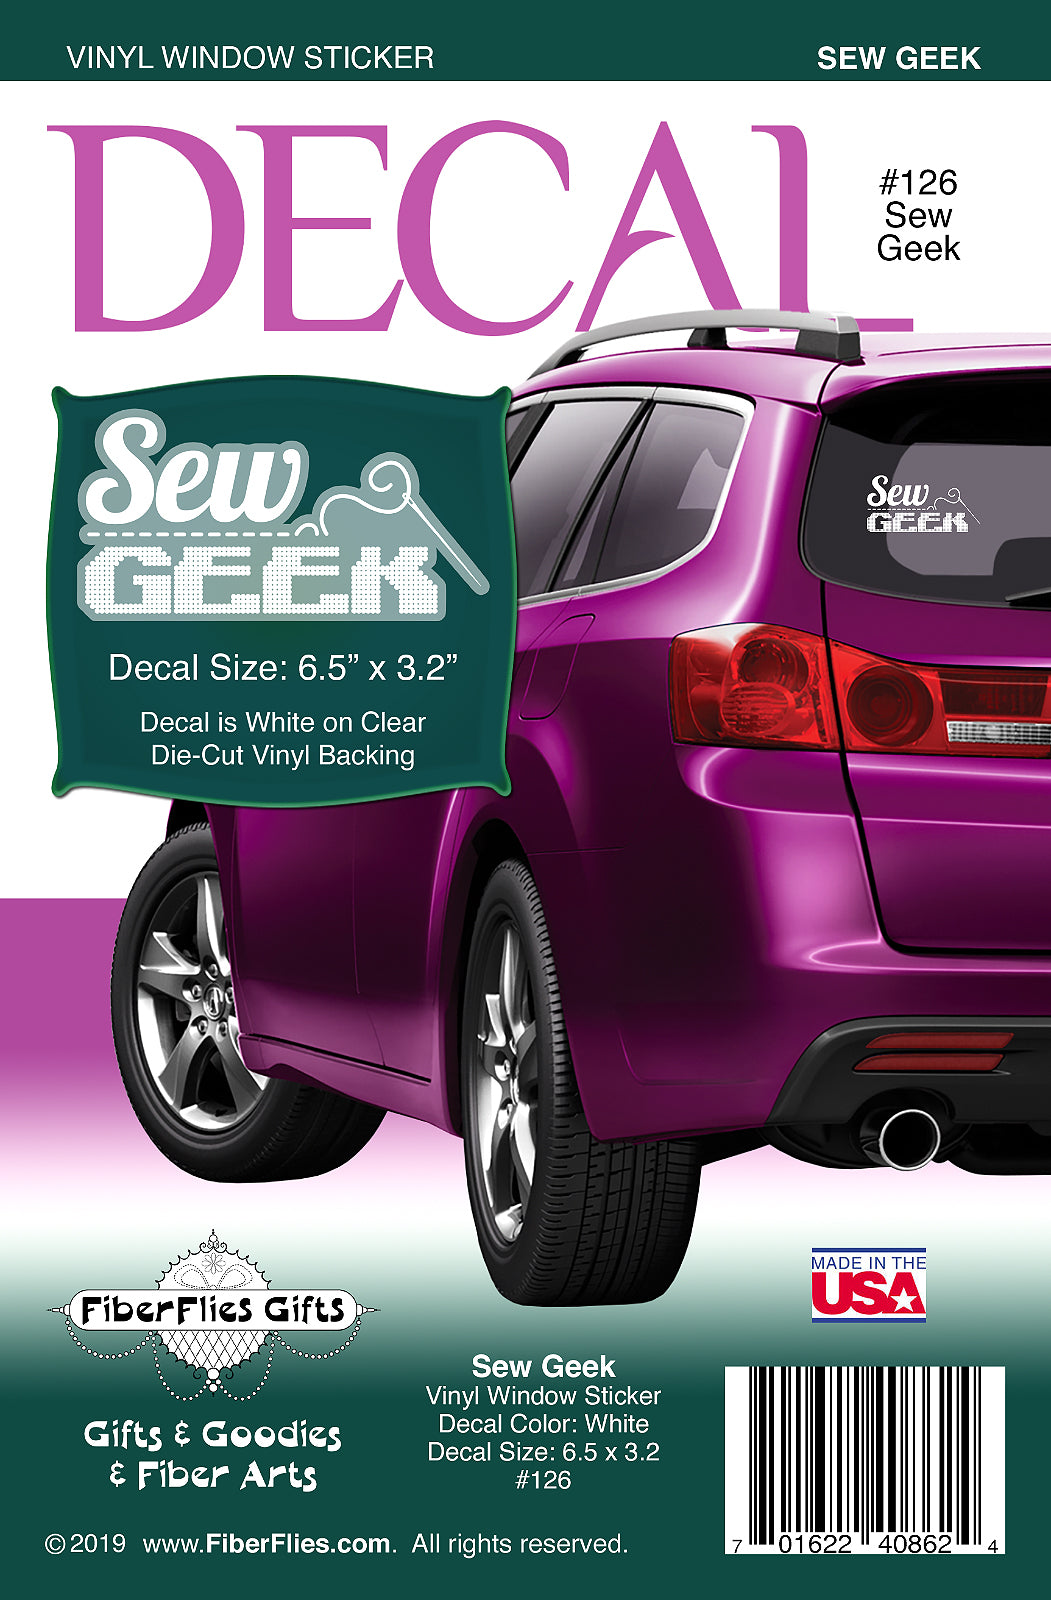 SEW GEEK - Vinyl Decal for Car or Home